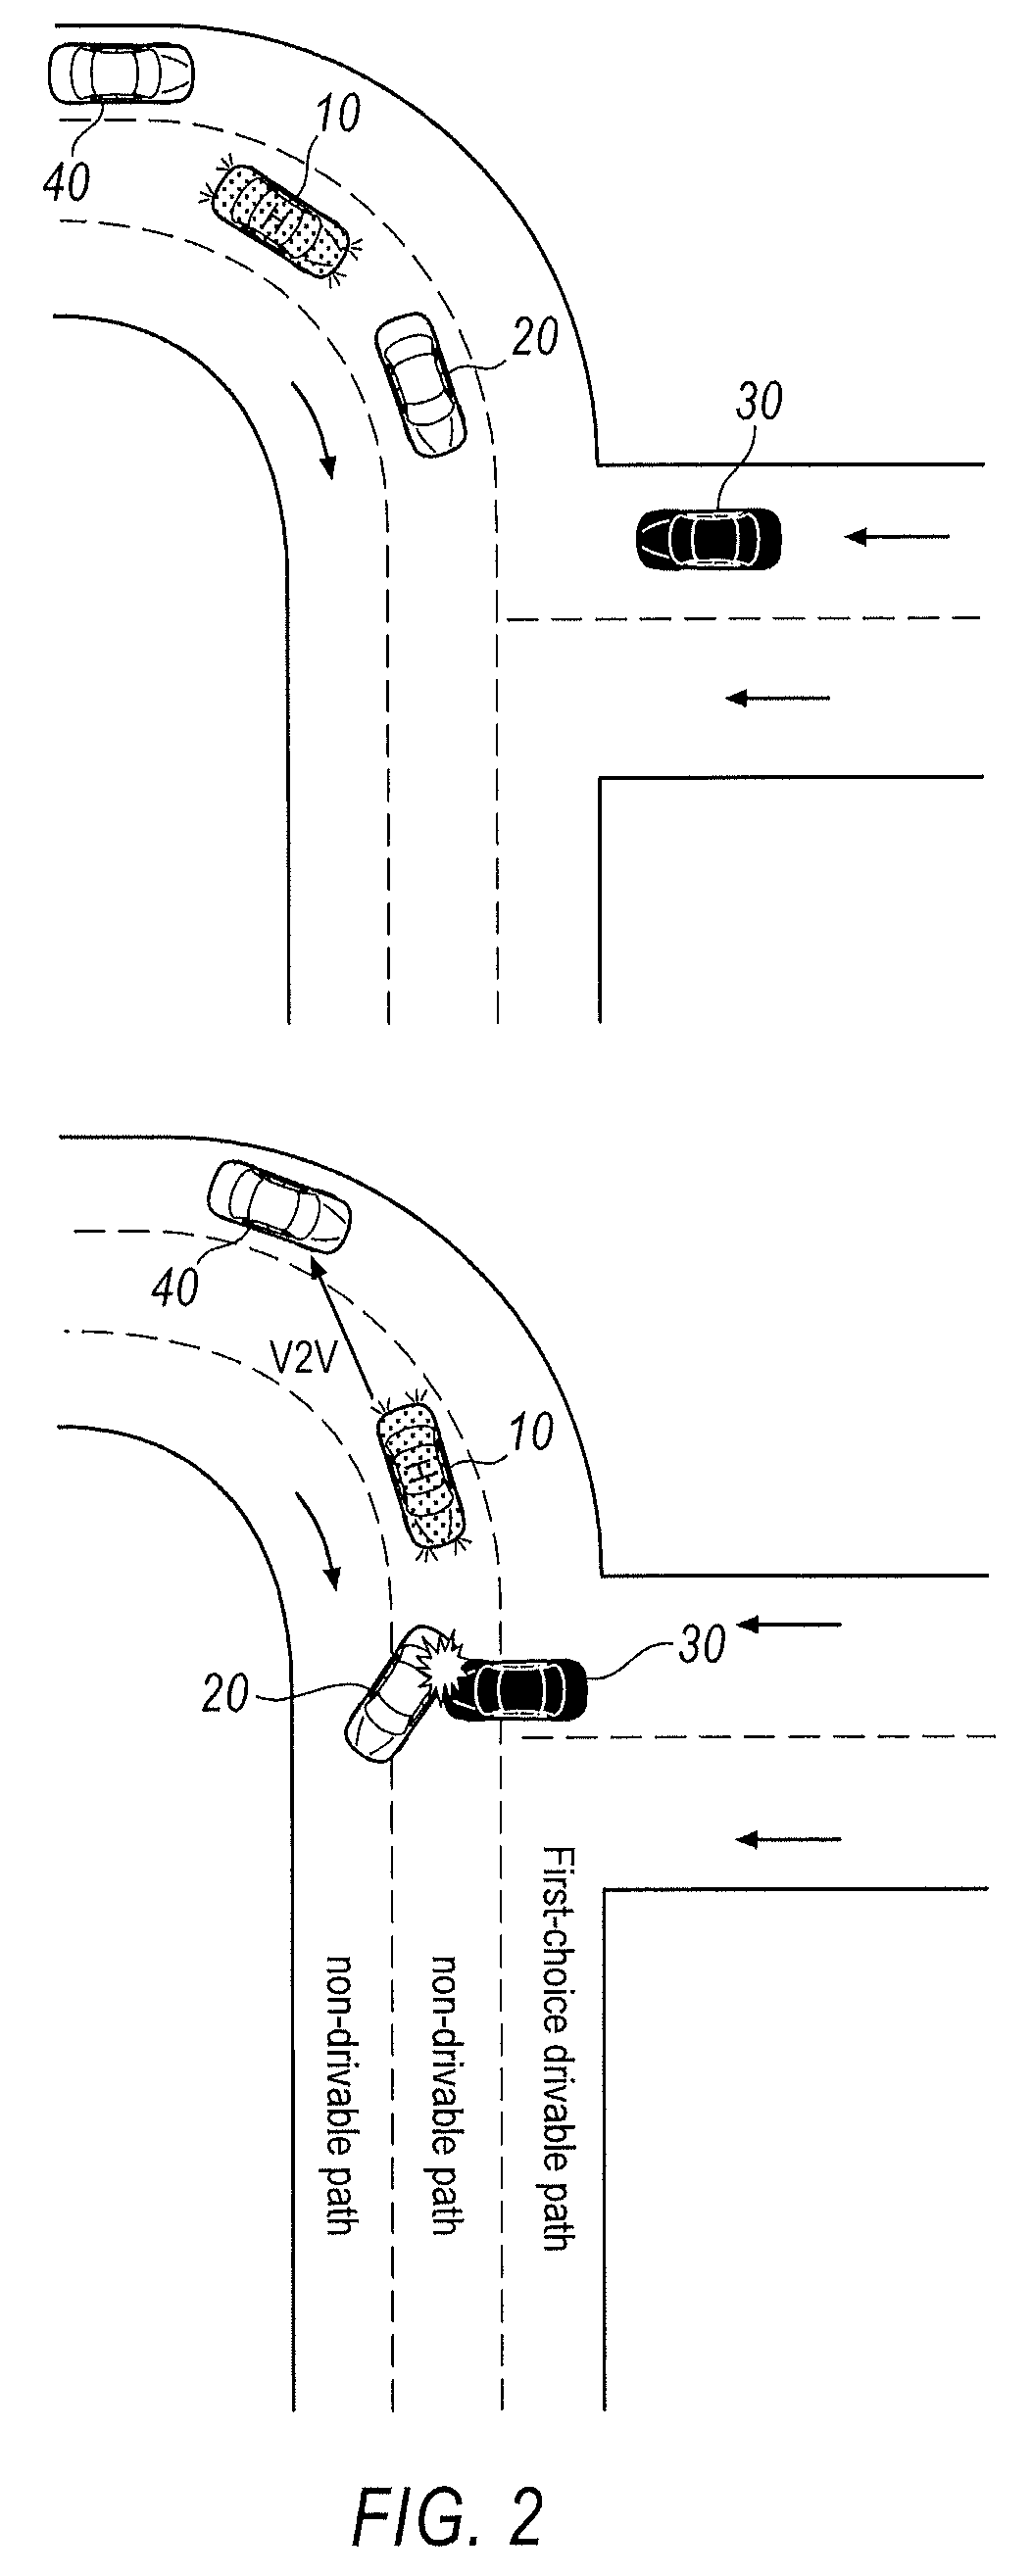 impact of the collision of the Estimating the speed of a motor vehicle in a estimating the speed of a motor vehicle in a collision car a was traveling at the time of impact.